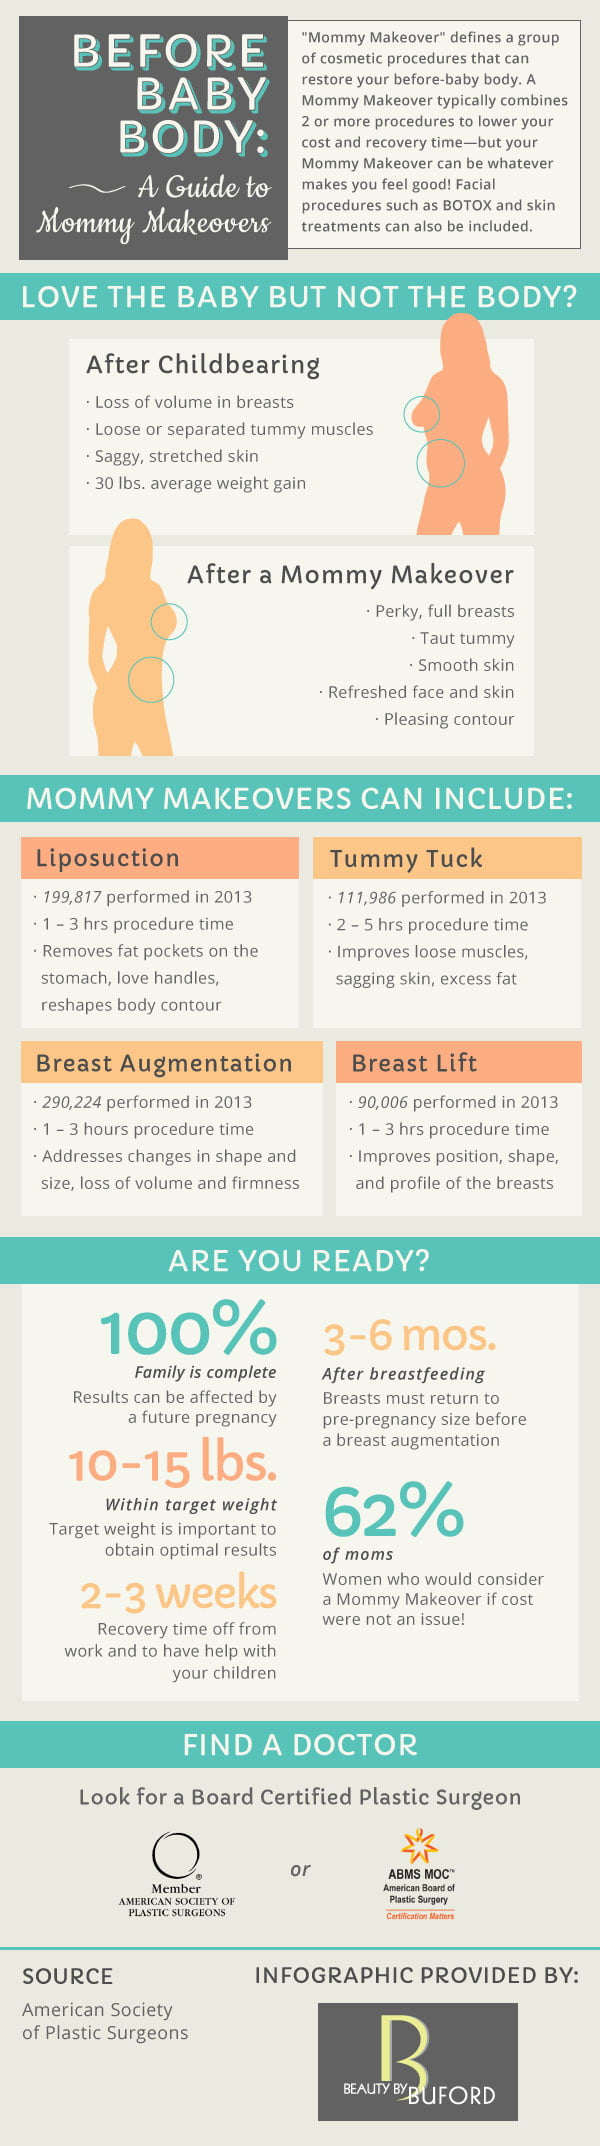 buford-infographic-mommy-makeover